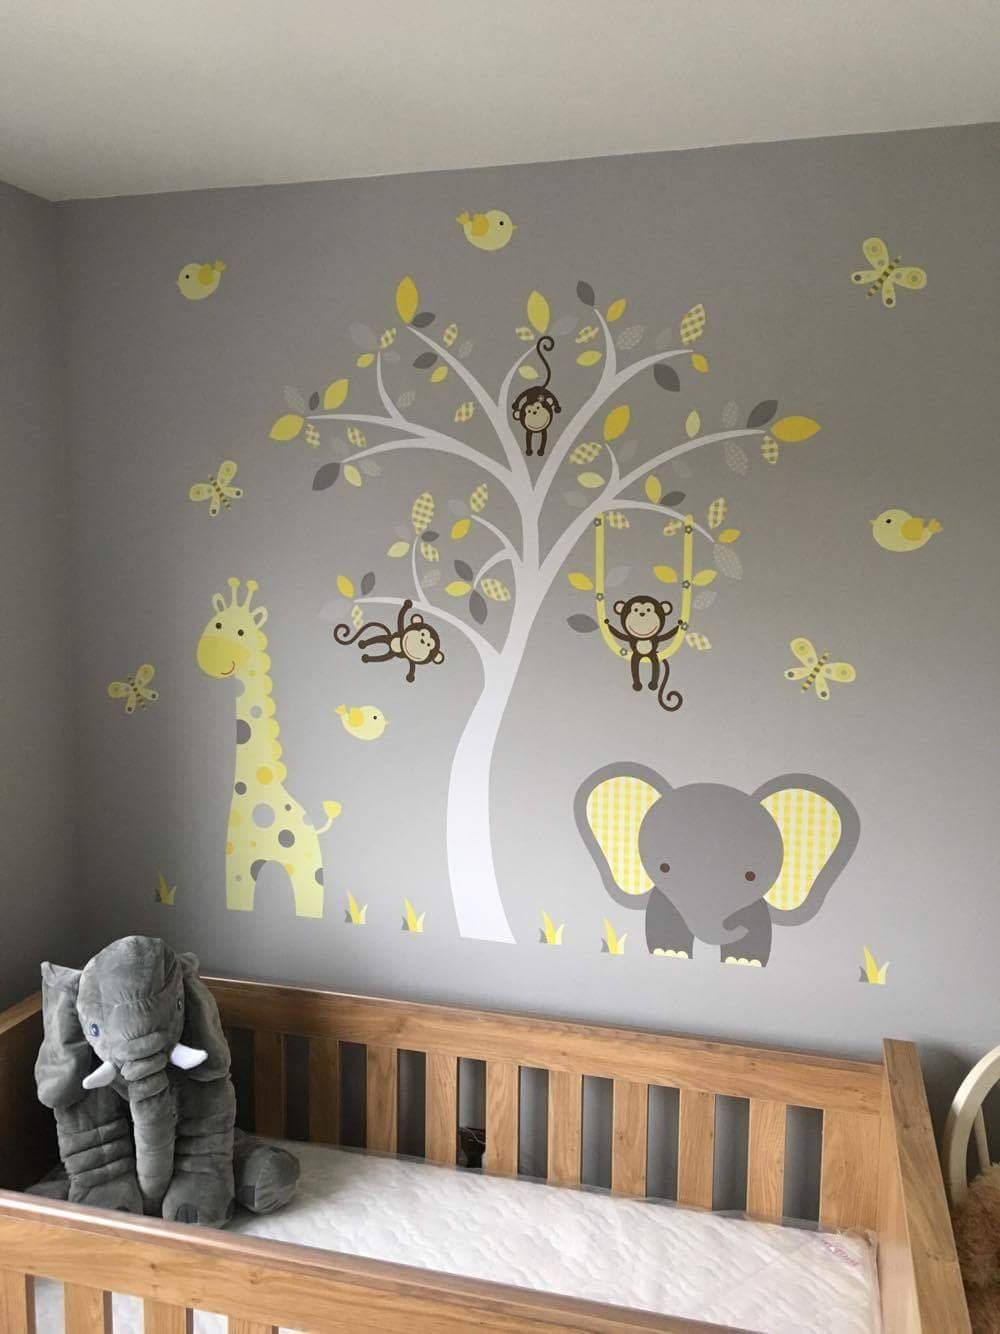 Jungle Decal, Gender Neutral Wall Stickers, Yellow and Grey nursery decor, swinging monkeys, a giraffe, a baby elephant a white tree mural